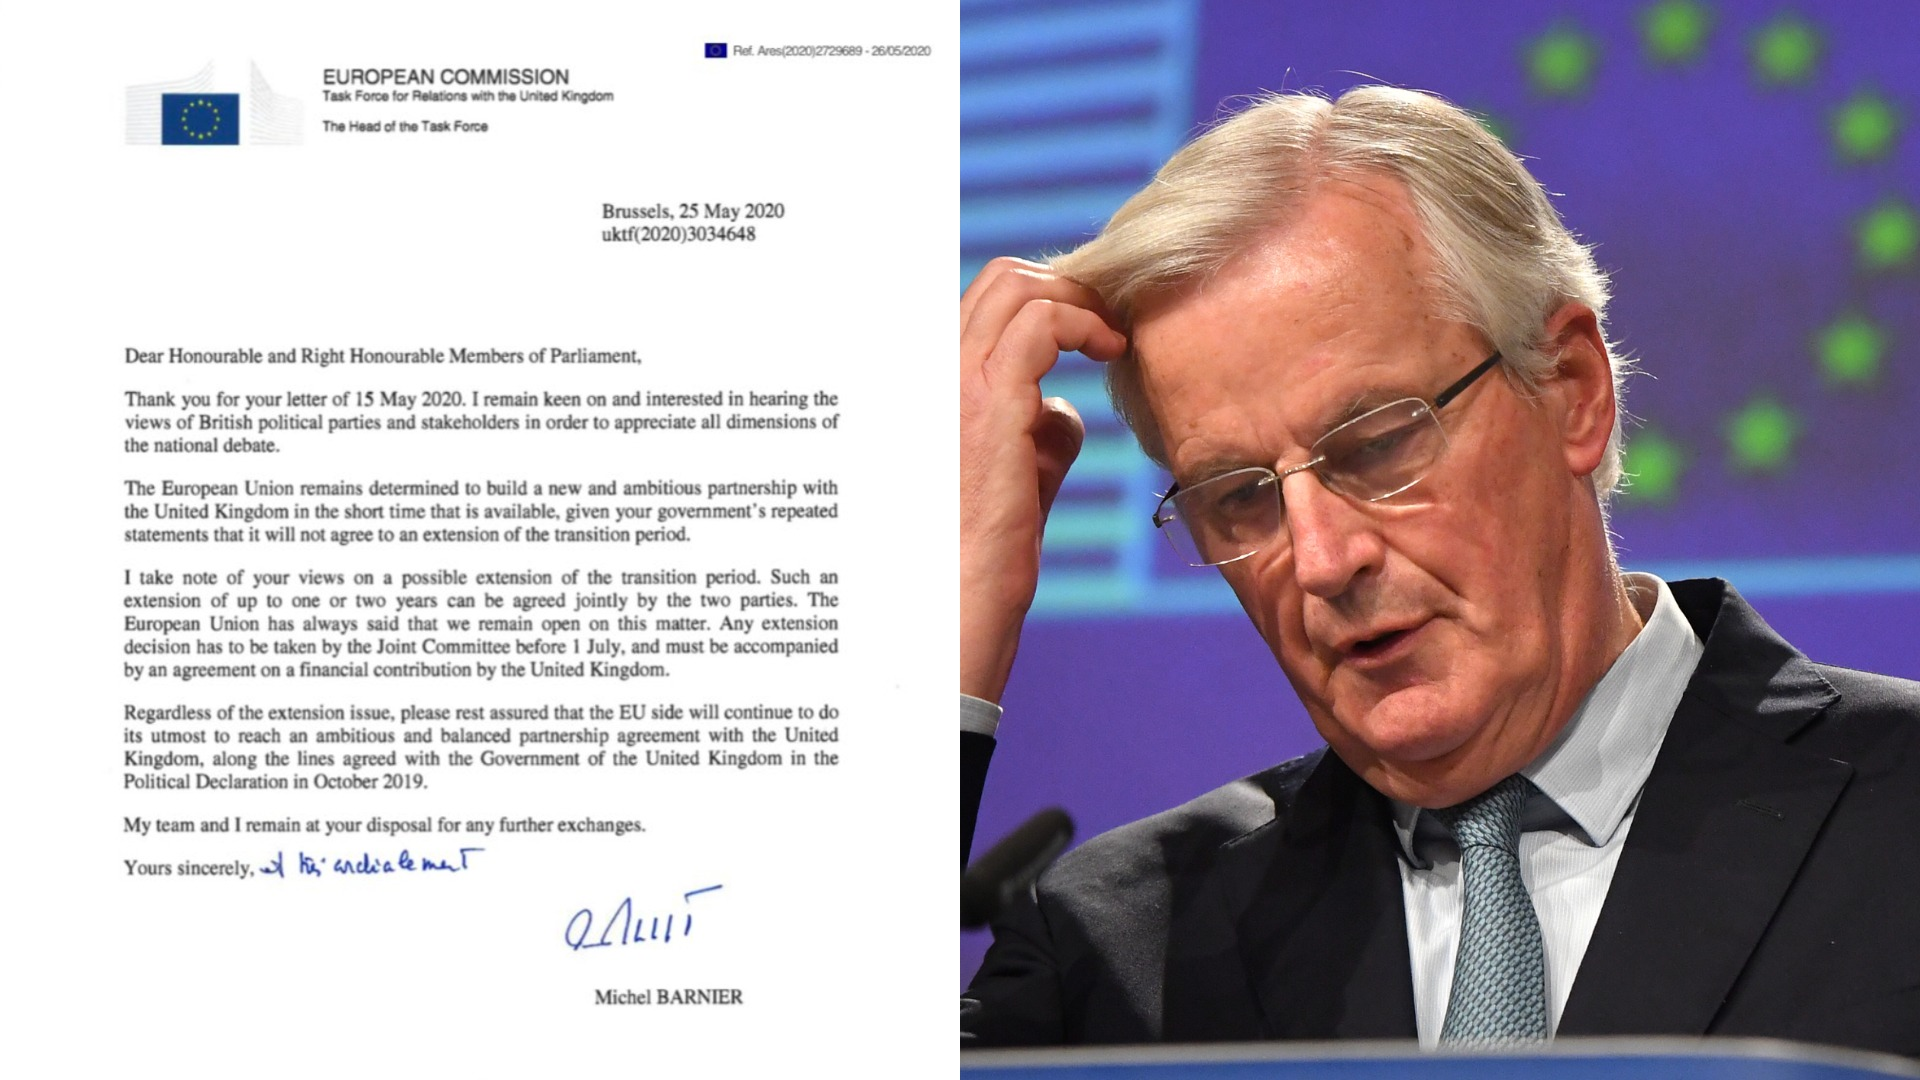 EU open to two-year Brexit extension, says Michel Barnier in response to letter from opposition MPs